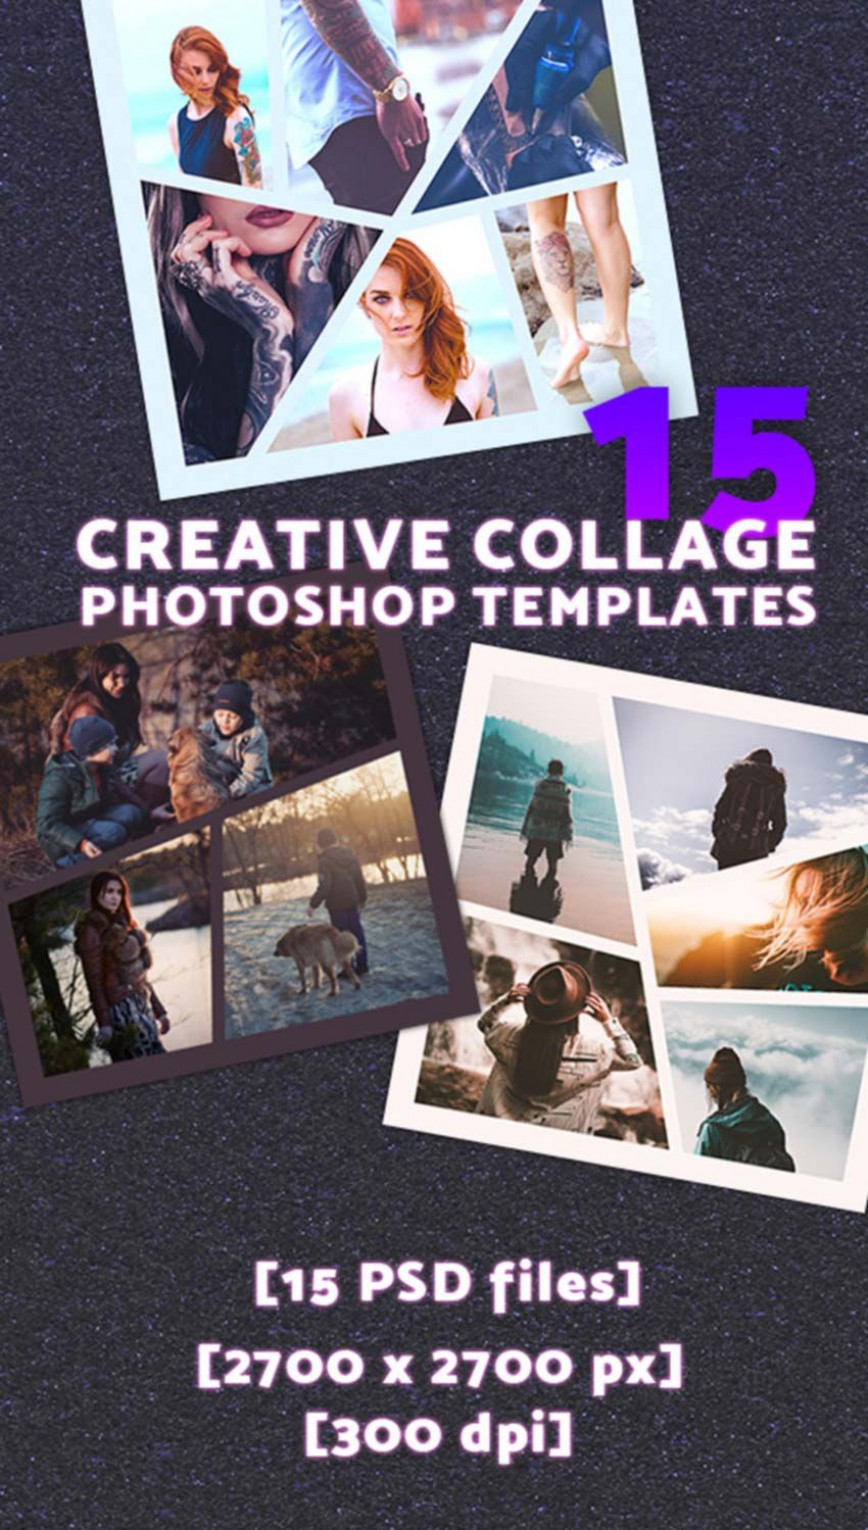 004 Wonderful Free Photo Collage Template No Download High Definition